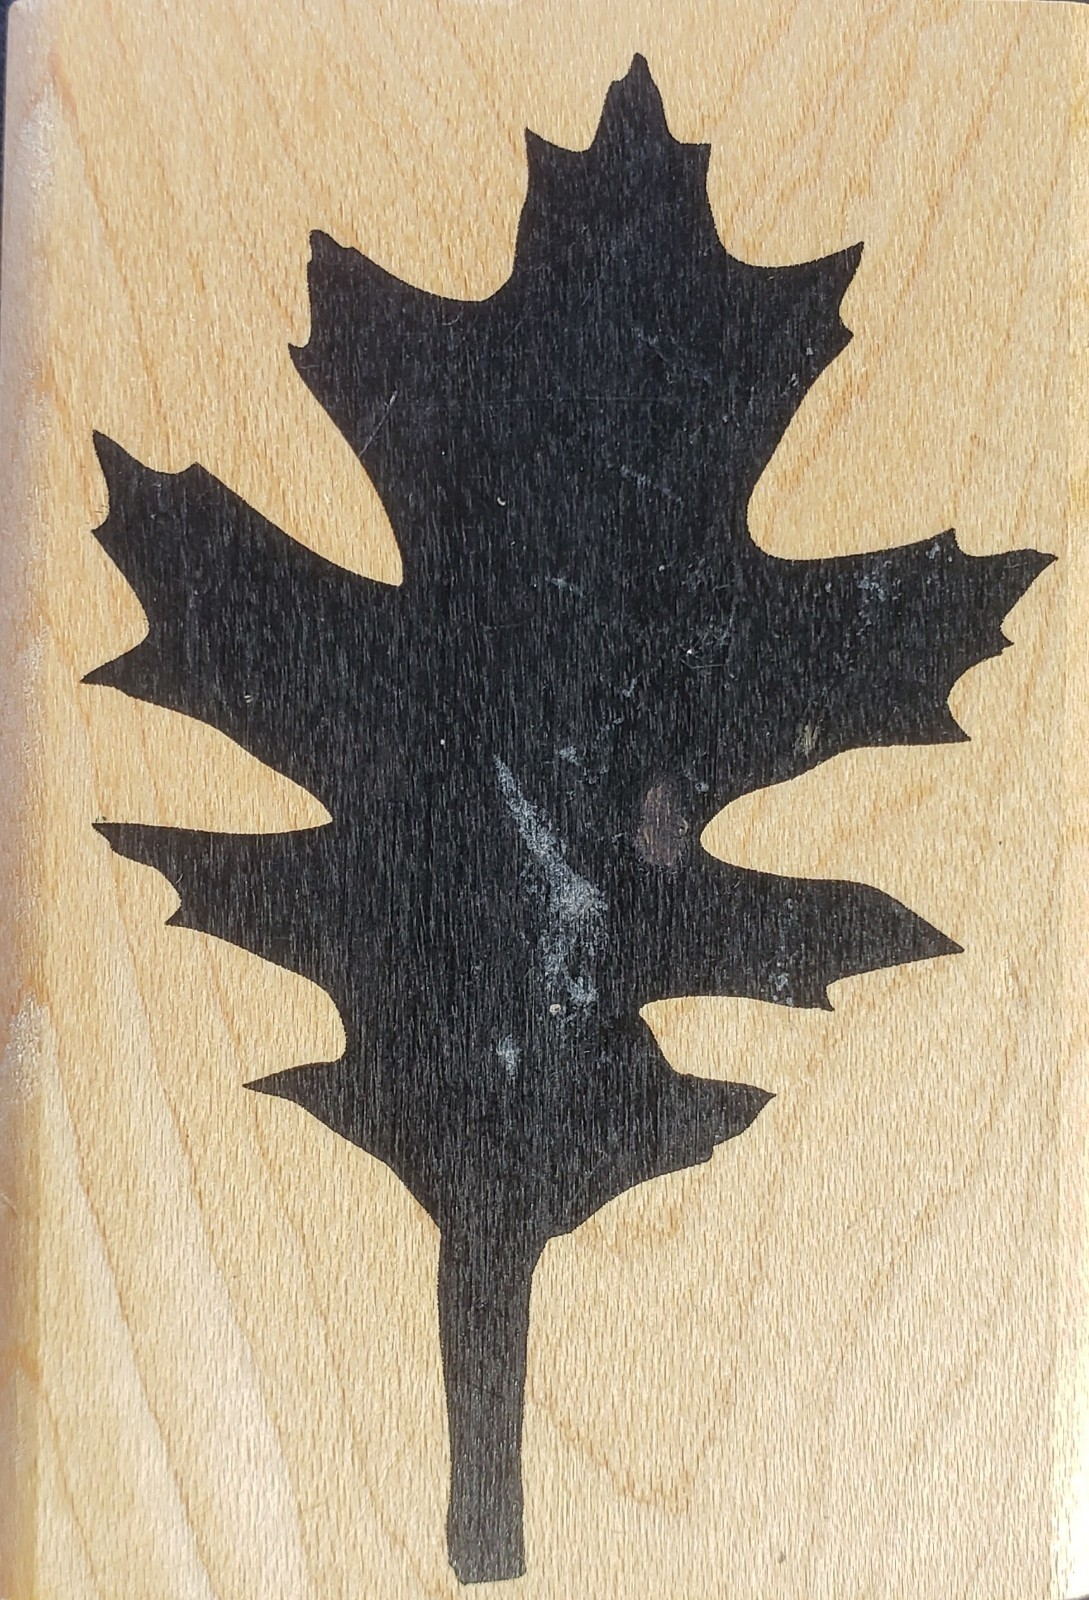 Stampers Anonymous Leaf Silhouette 1 K5-1755